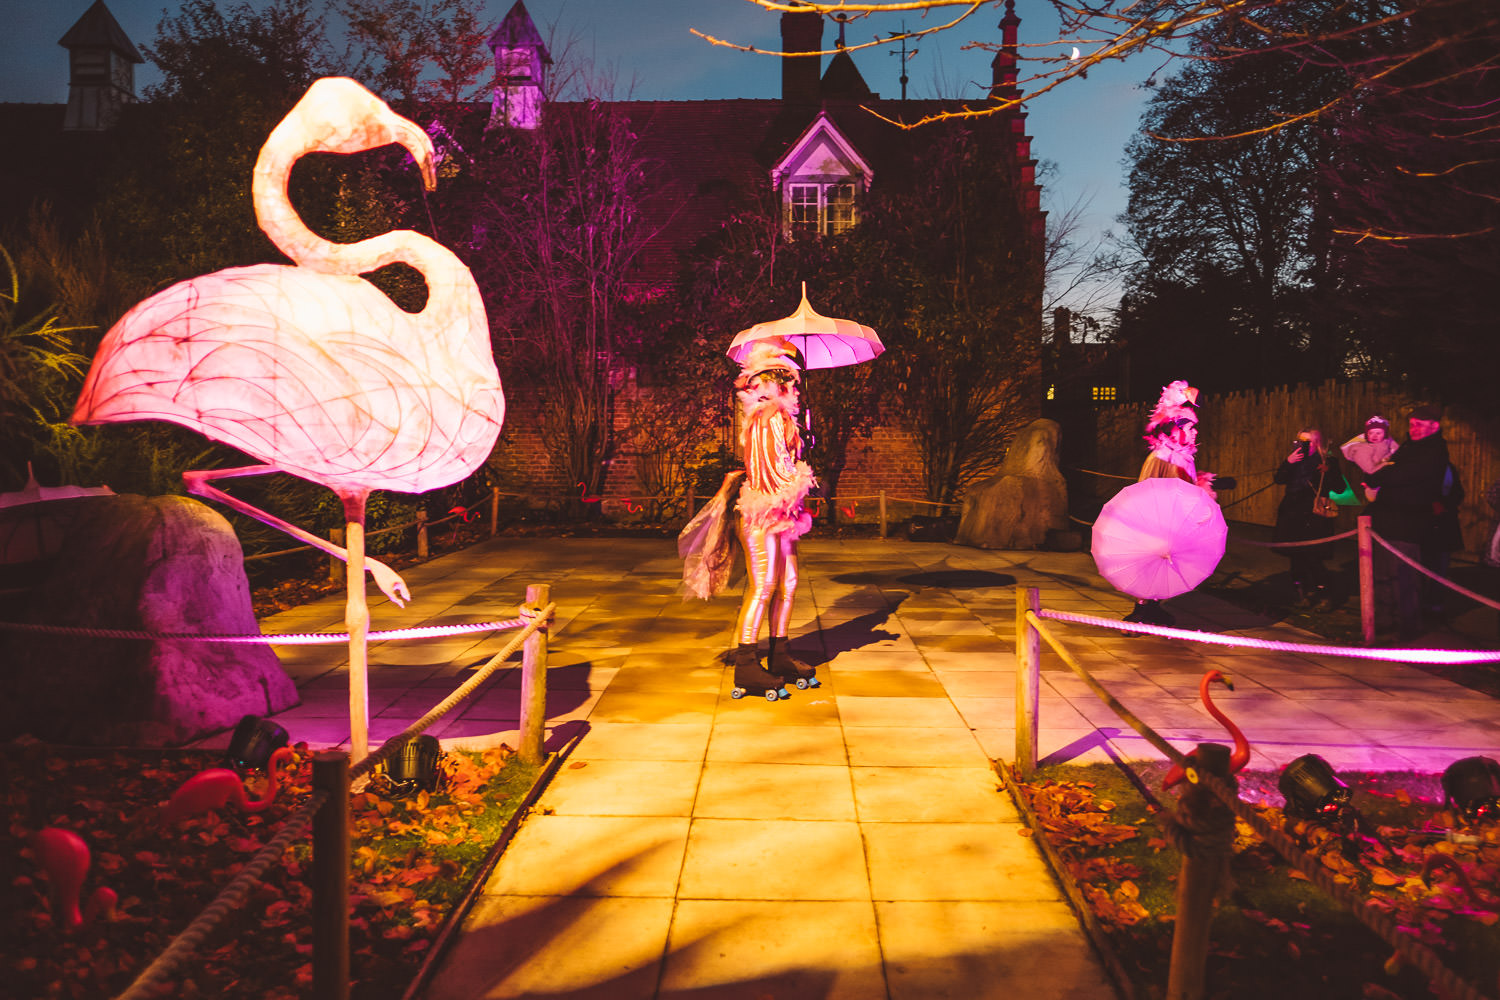 cocktail_saturdays_the_lanterns_at_chester_zoo-7820.jpg